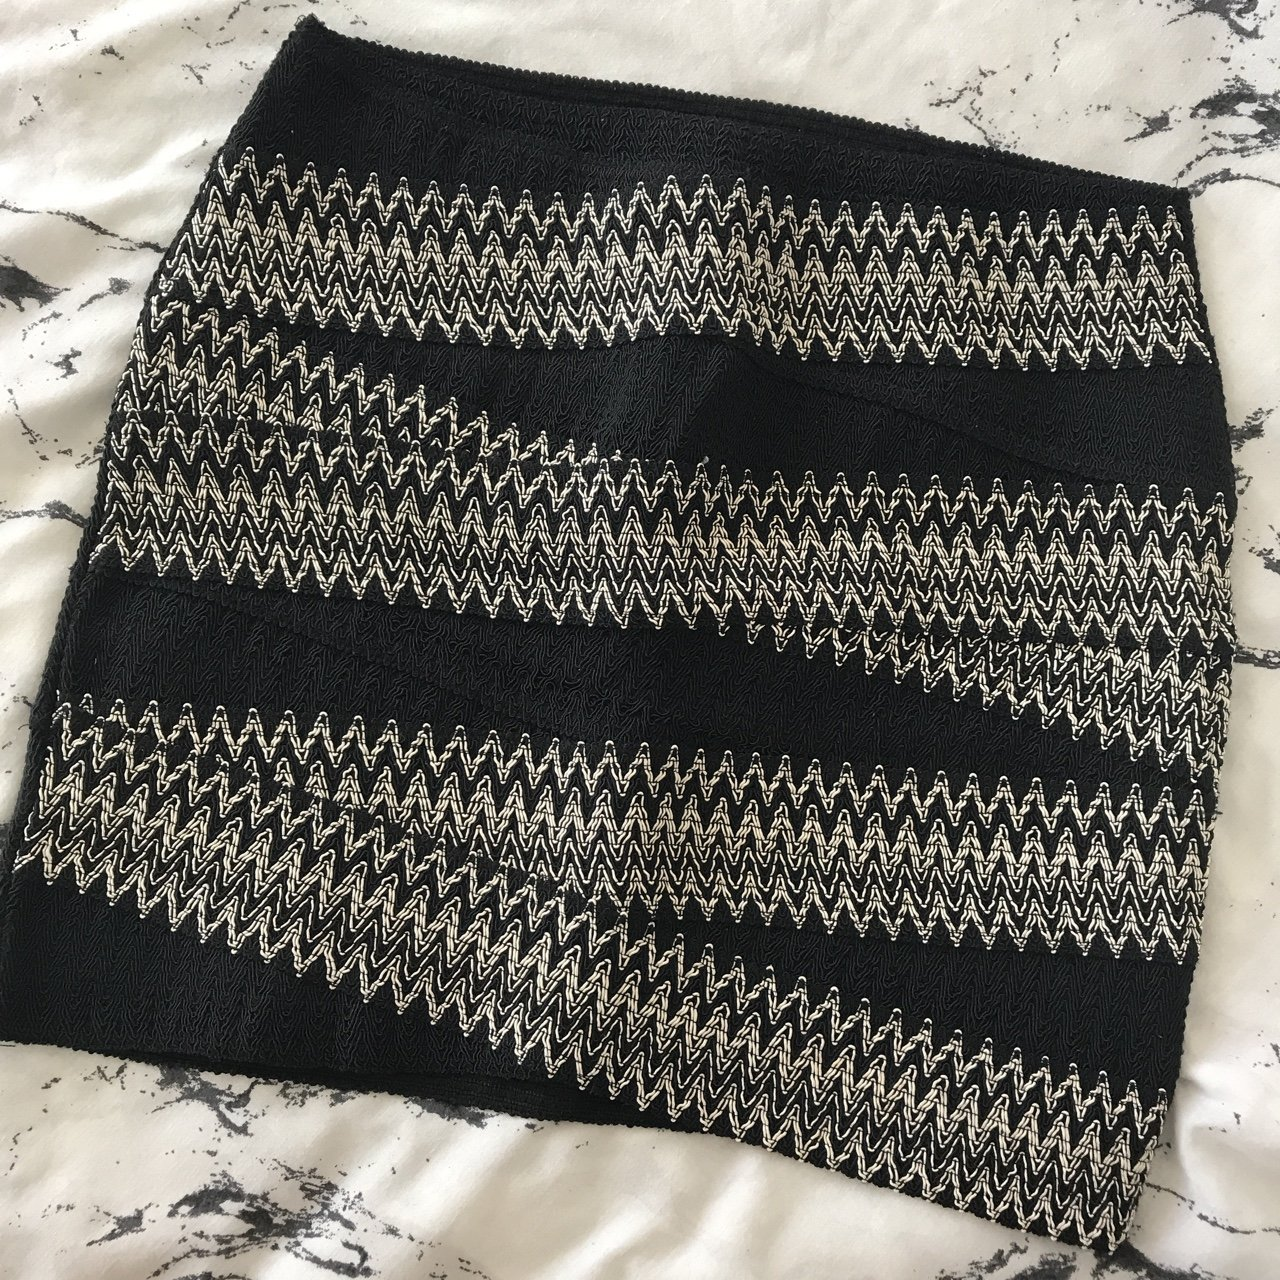 53790d49c4 @charlottebrincat. last year. Chatham, United Kingdom. H&M black and white  patterned body con skirt. Excellent condition. Size M.